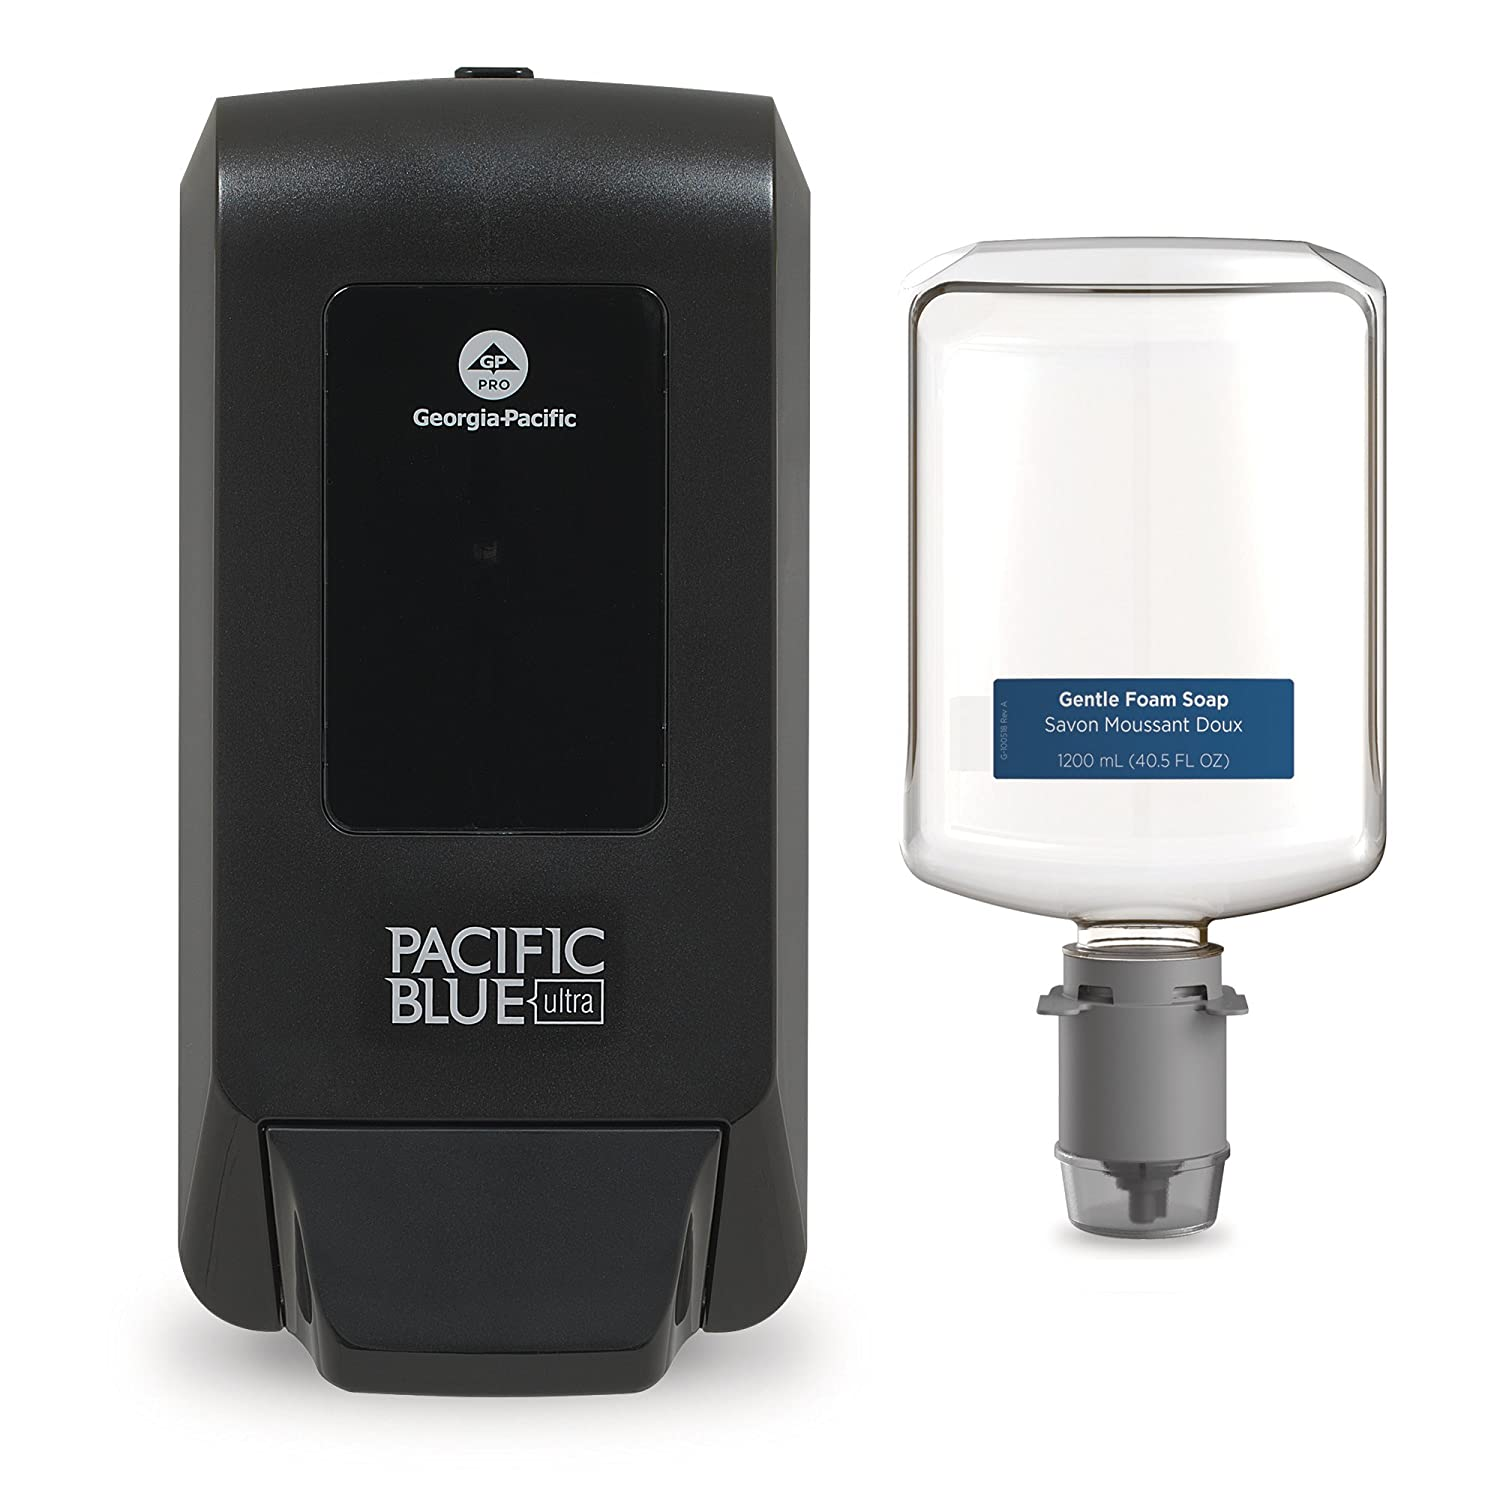 Pacific Blue Ultra Manual Soap Dispenser Trial Kit by GP PRO (Georgia-Pacific), Black, Refill 5305714, [Contains 1 Dispenser (53057) and 1 Soap (43714)]